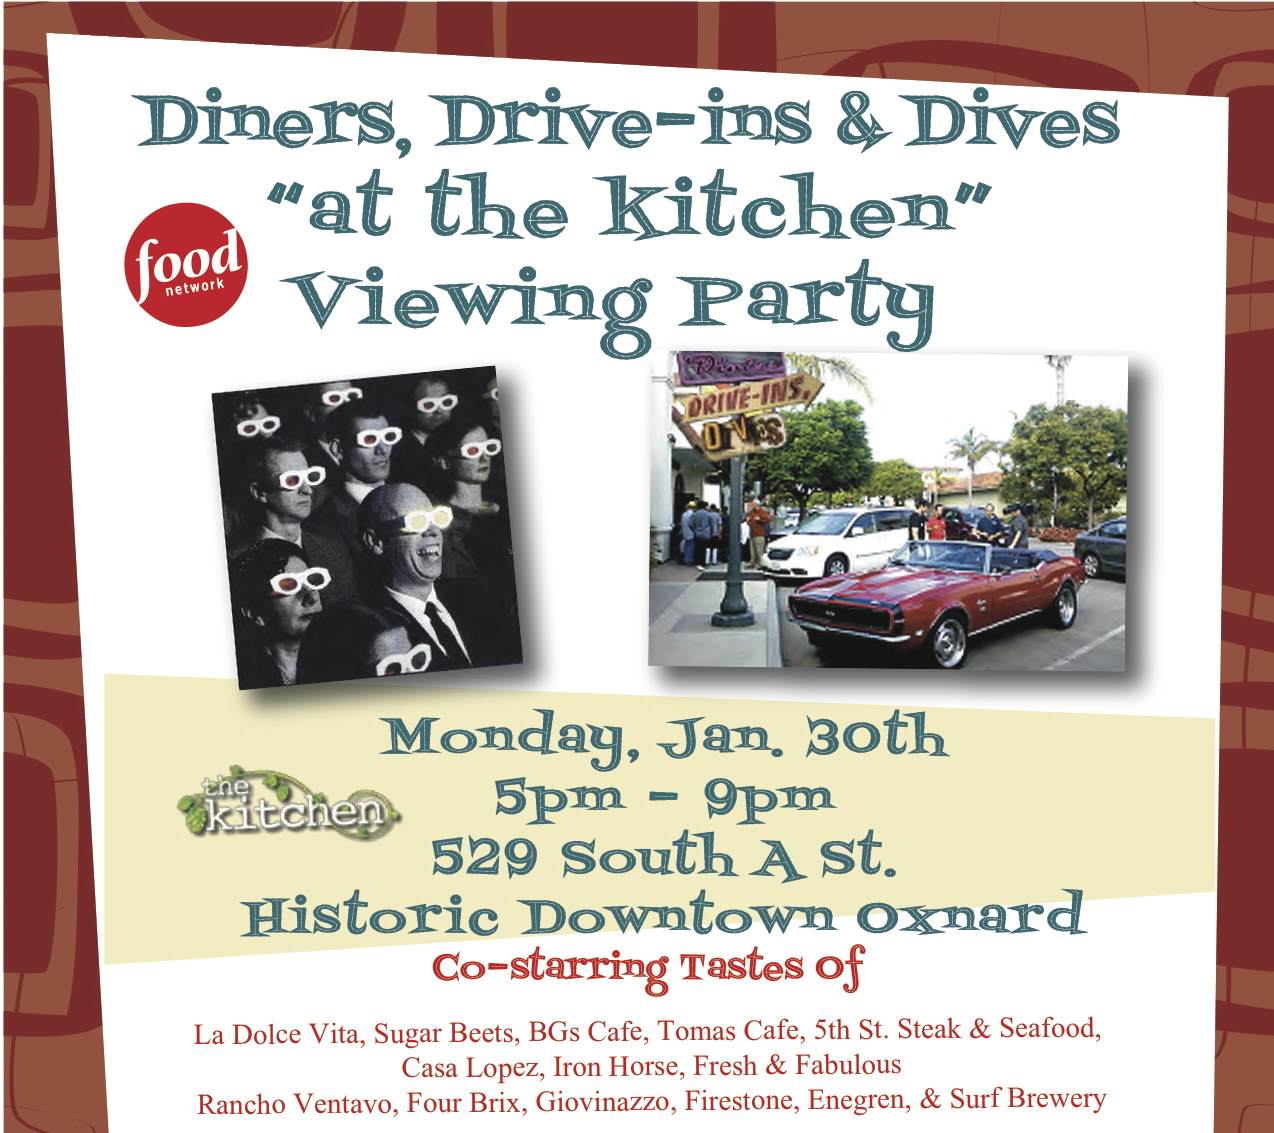 Taste N Trip: Diners, Drive-ins & Dives Viewing Party at The Kitchen